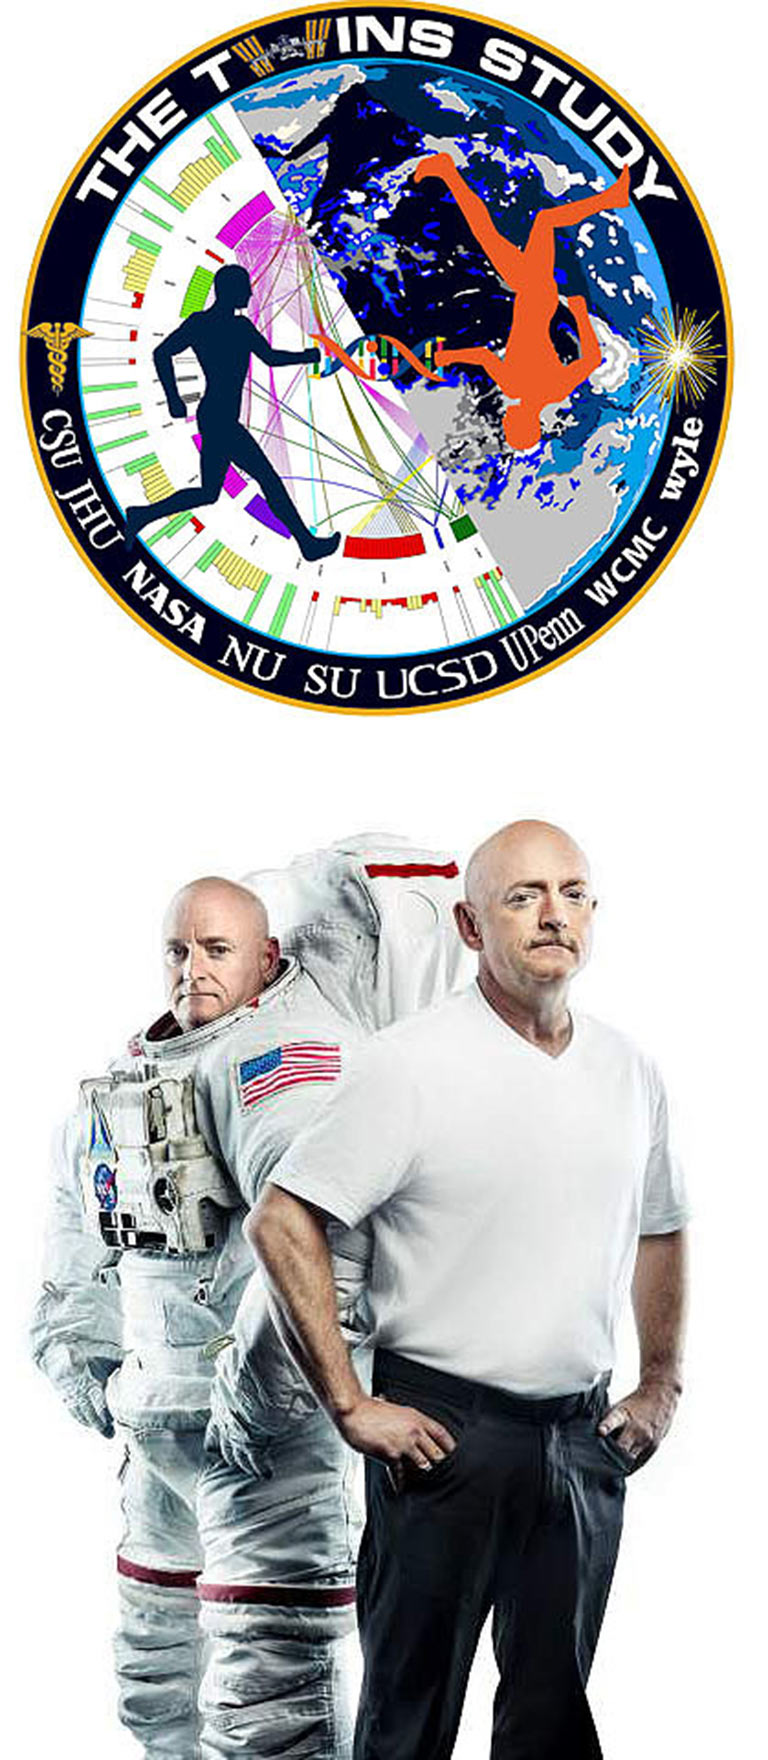 scott kelly one year mission nasa iss